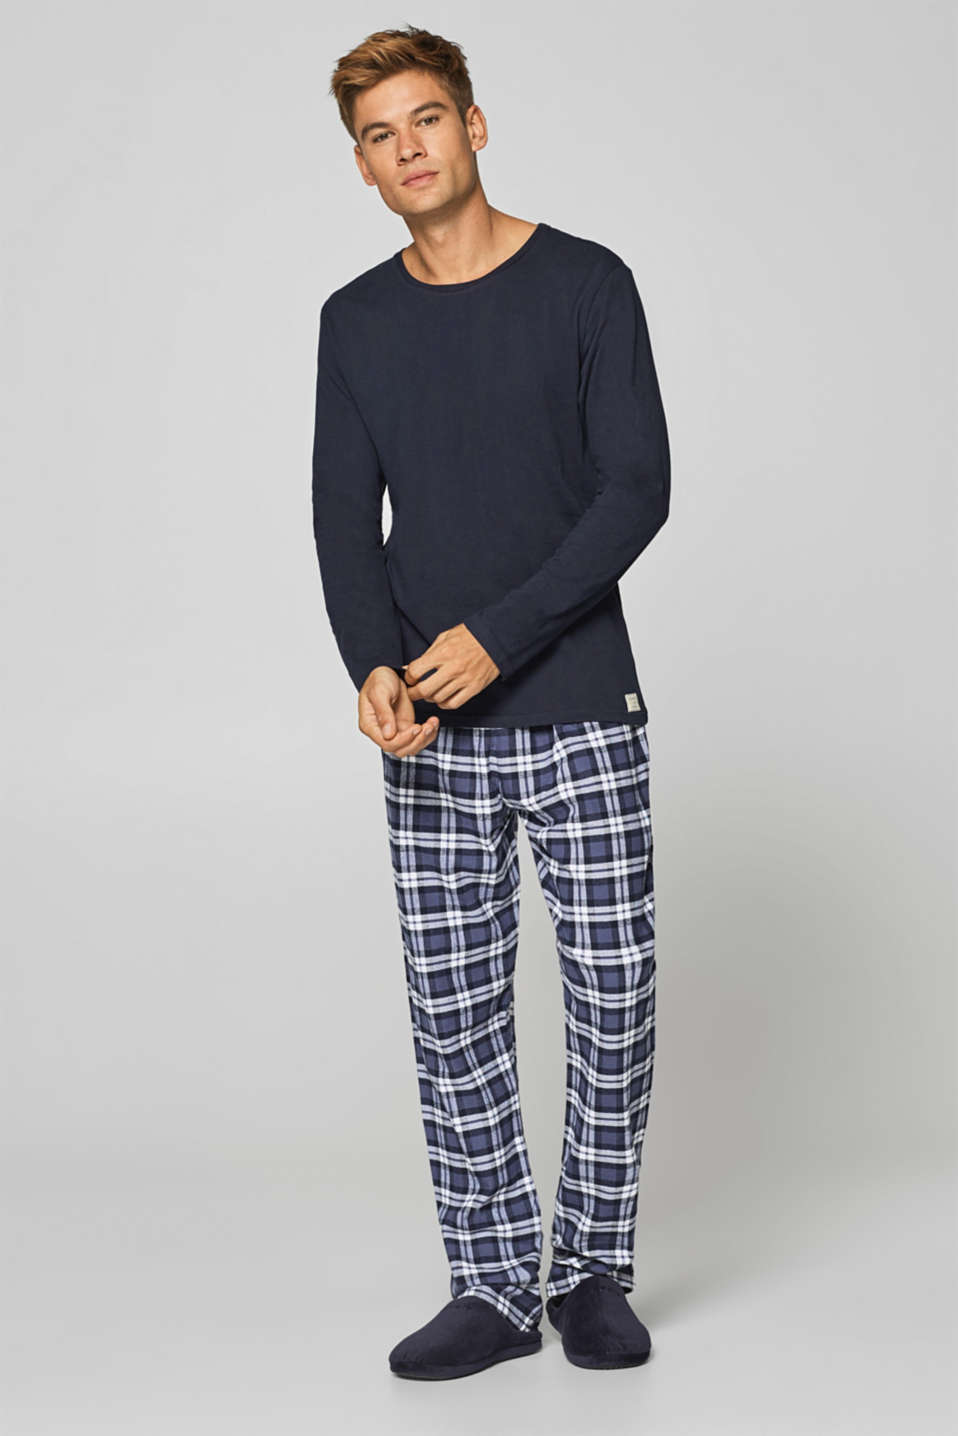 Esprit - Pyjamas with flannel bottoms, 100% cotton